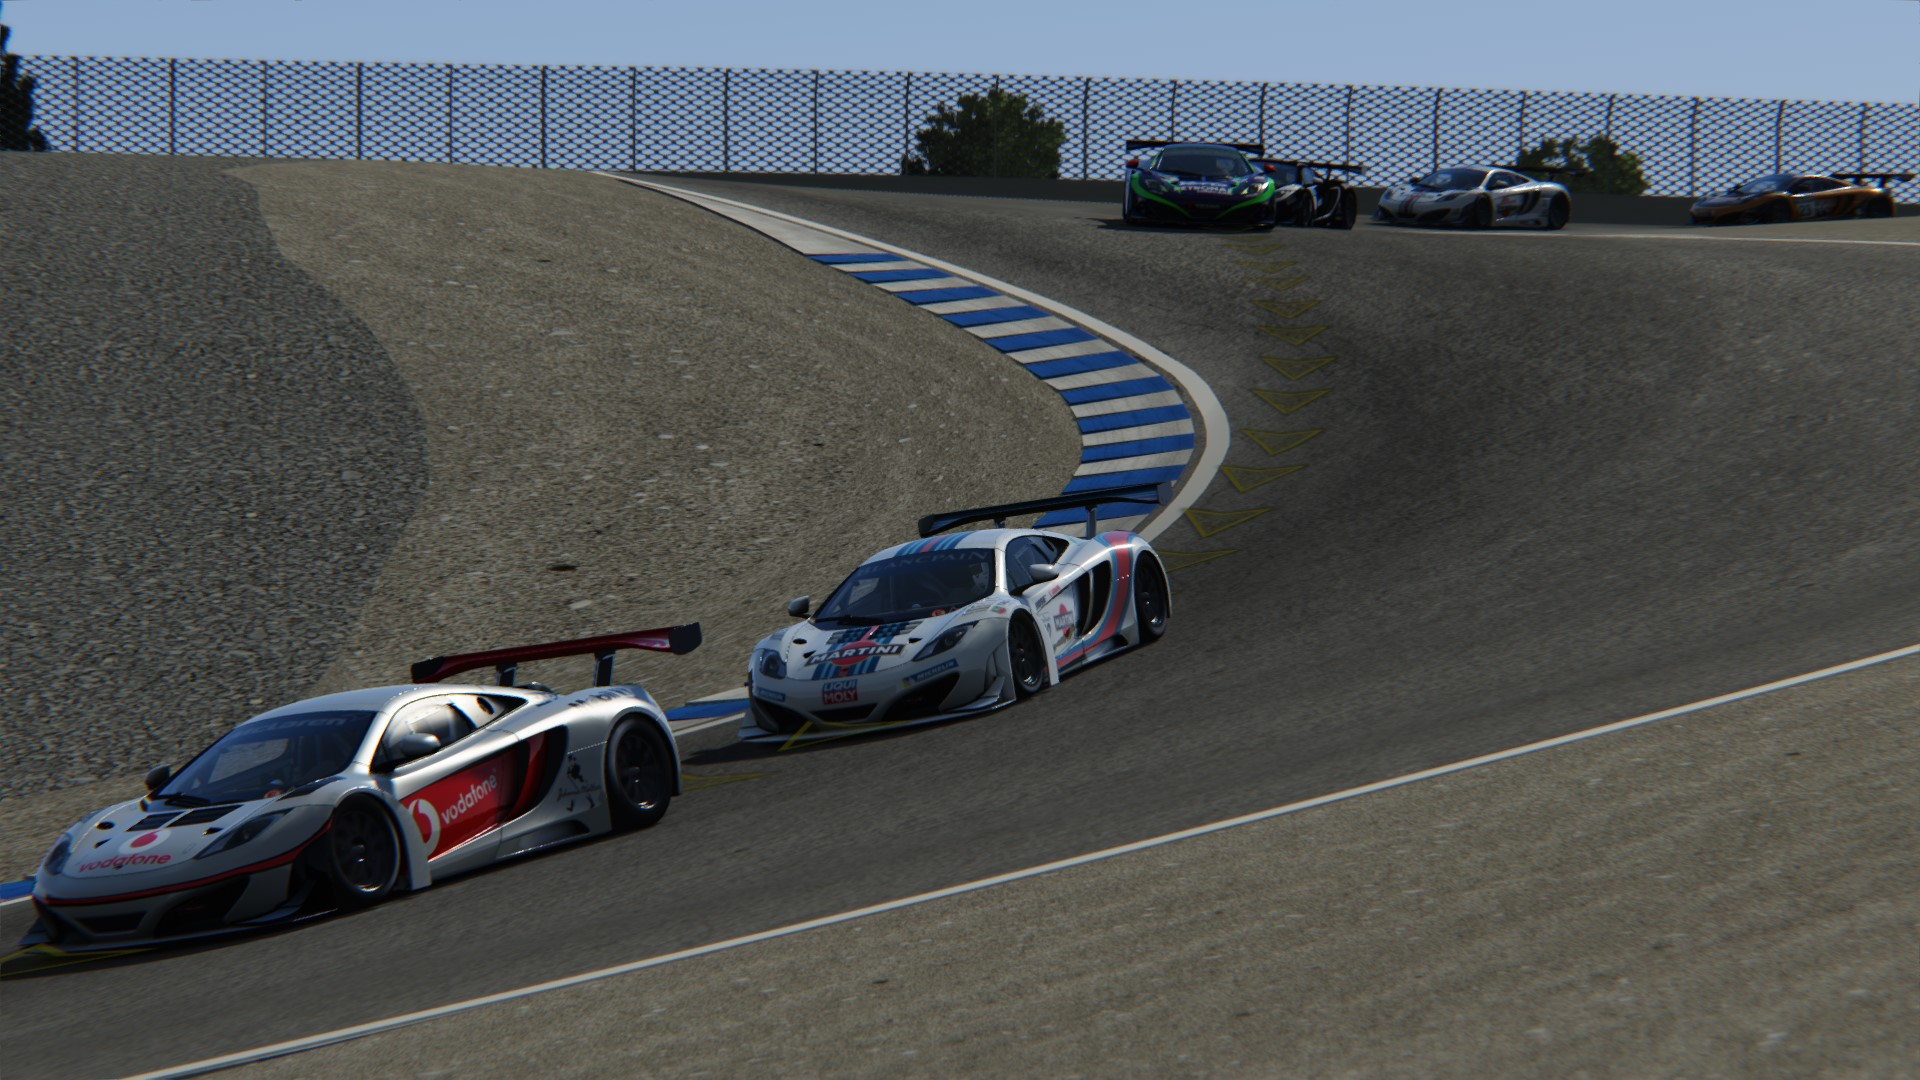 Screenshot_mclaren_mp412c_gt3_bs_lagunaseca_27-5-116-12-39-19.jpg